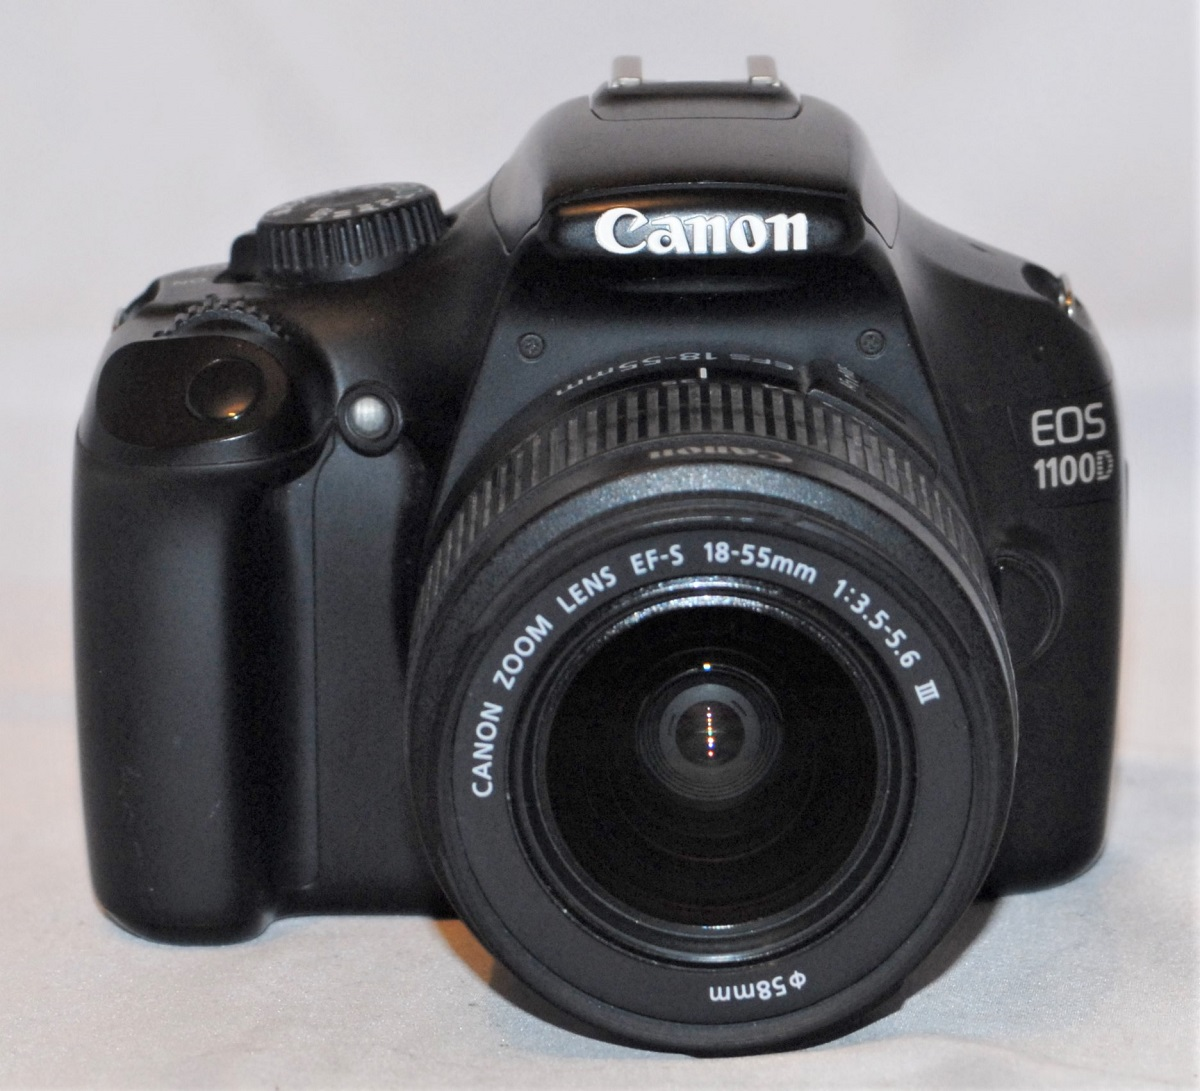 Canon EOS 1100D + 18-55mm f3.5-f5.6. Excellent condition. (SOLD)